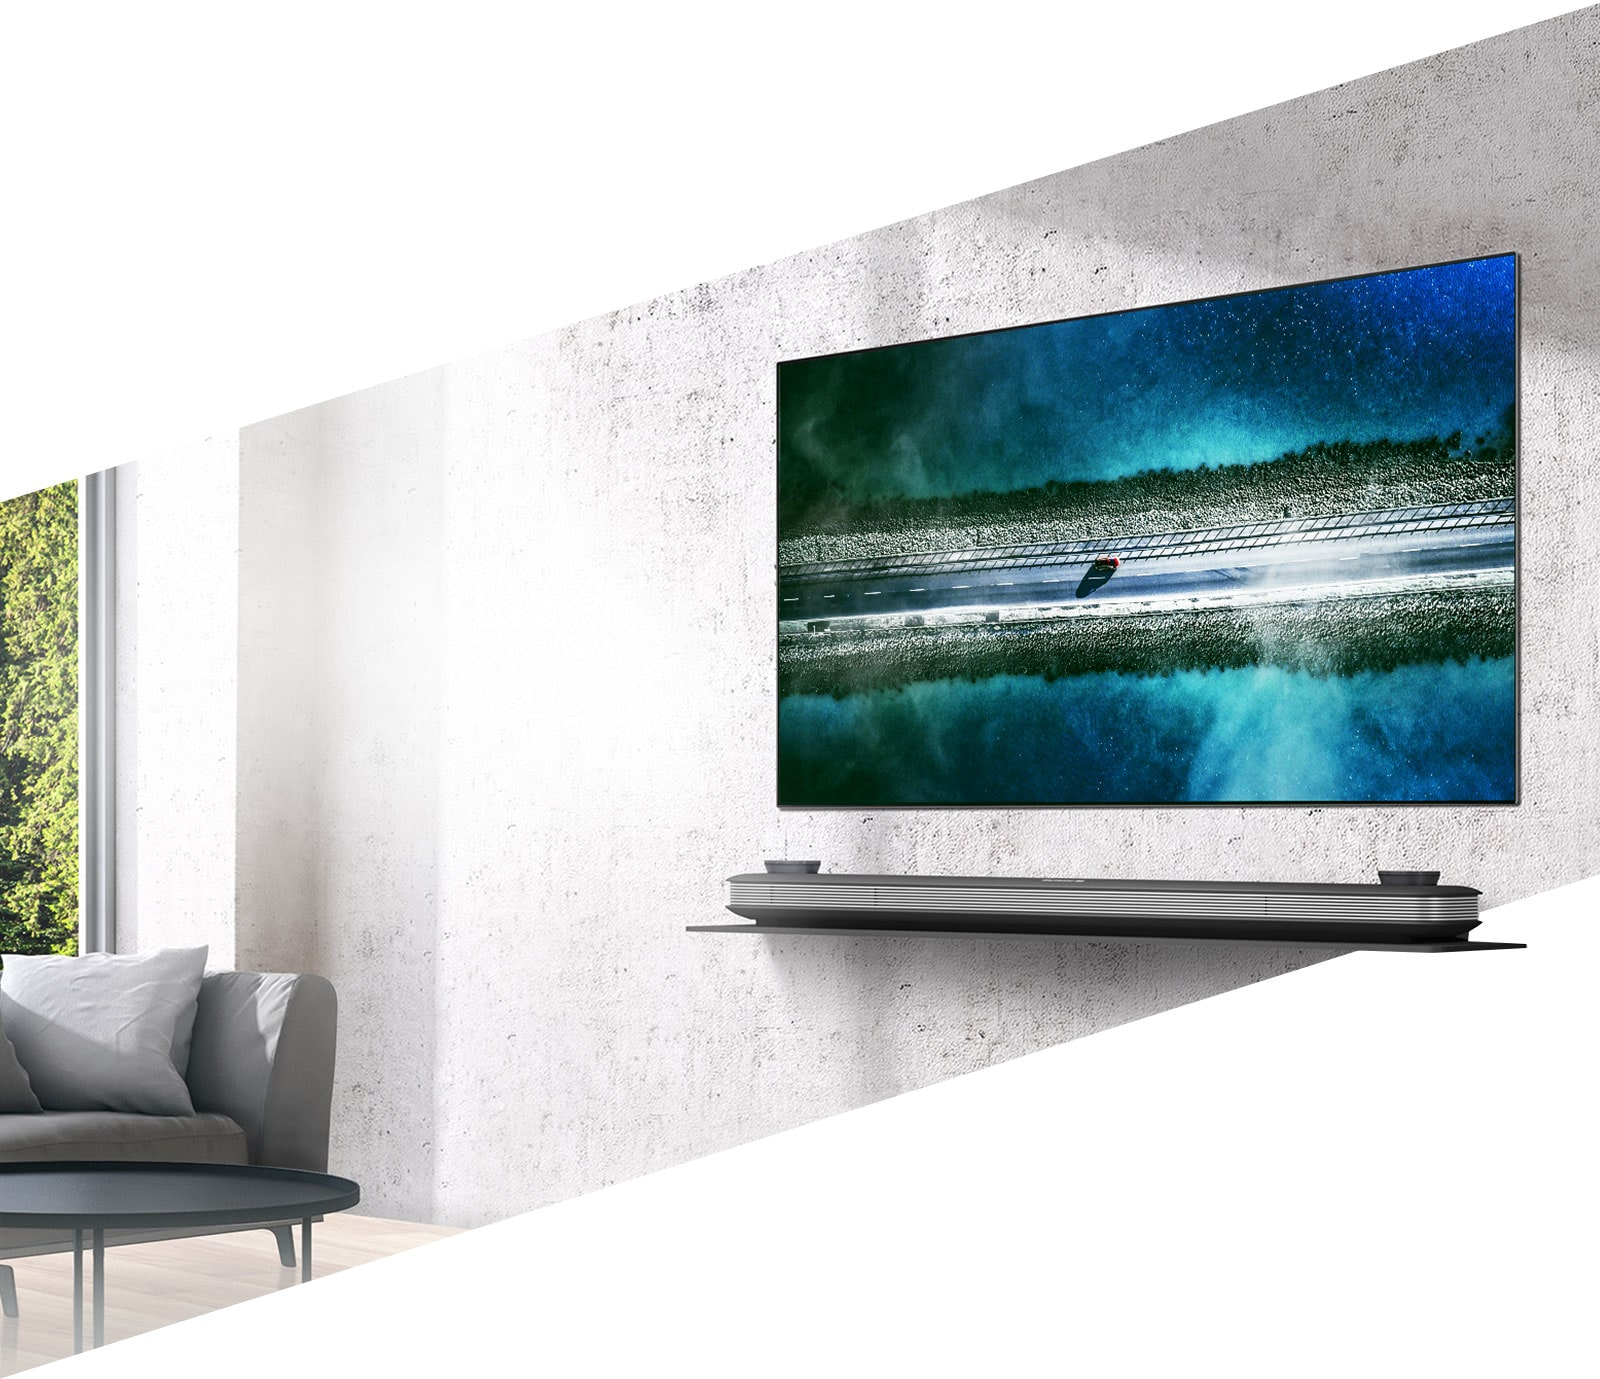 Lg Oled Vs Sony Oled Differences In Oled Technology Lg Usa